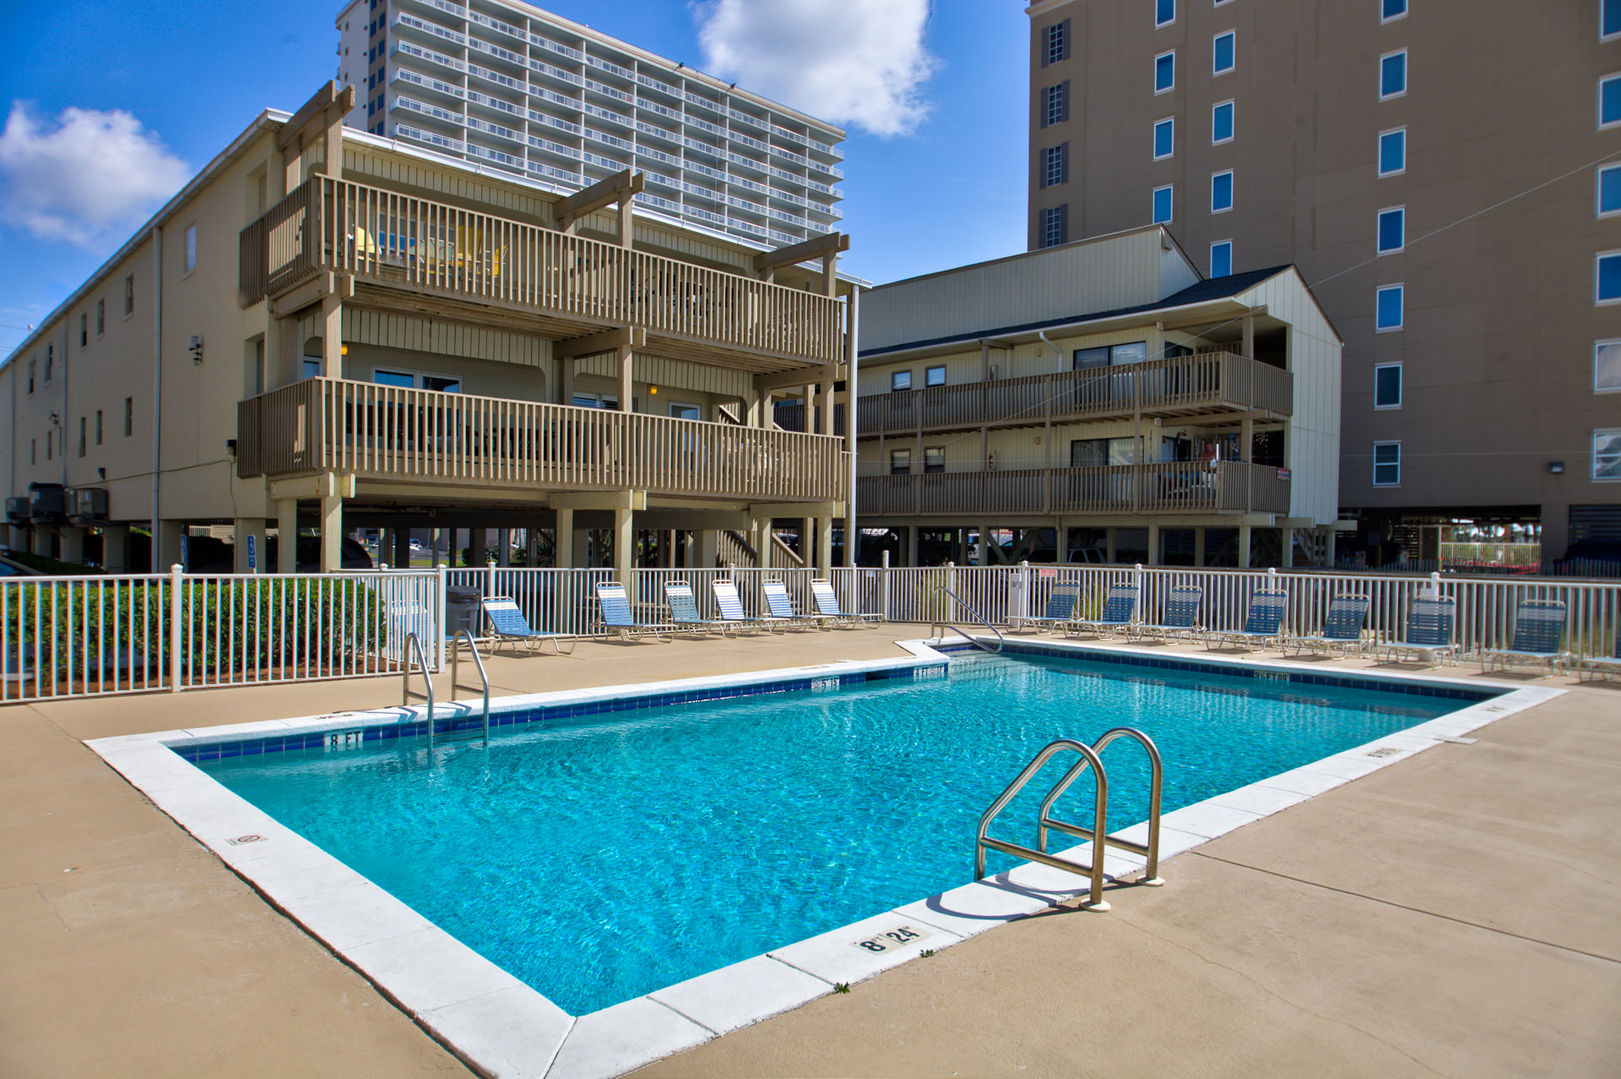 Guests Will Have Access to Two Pools